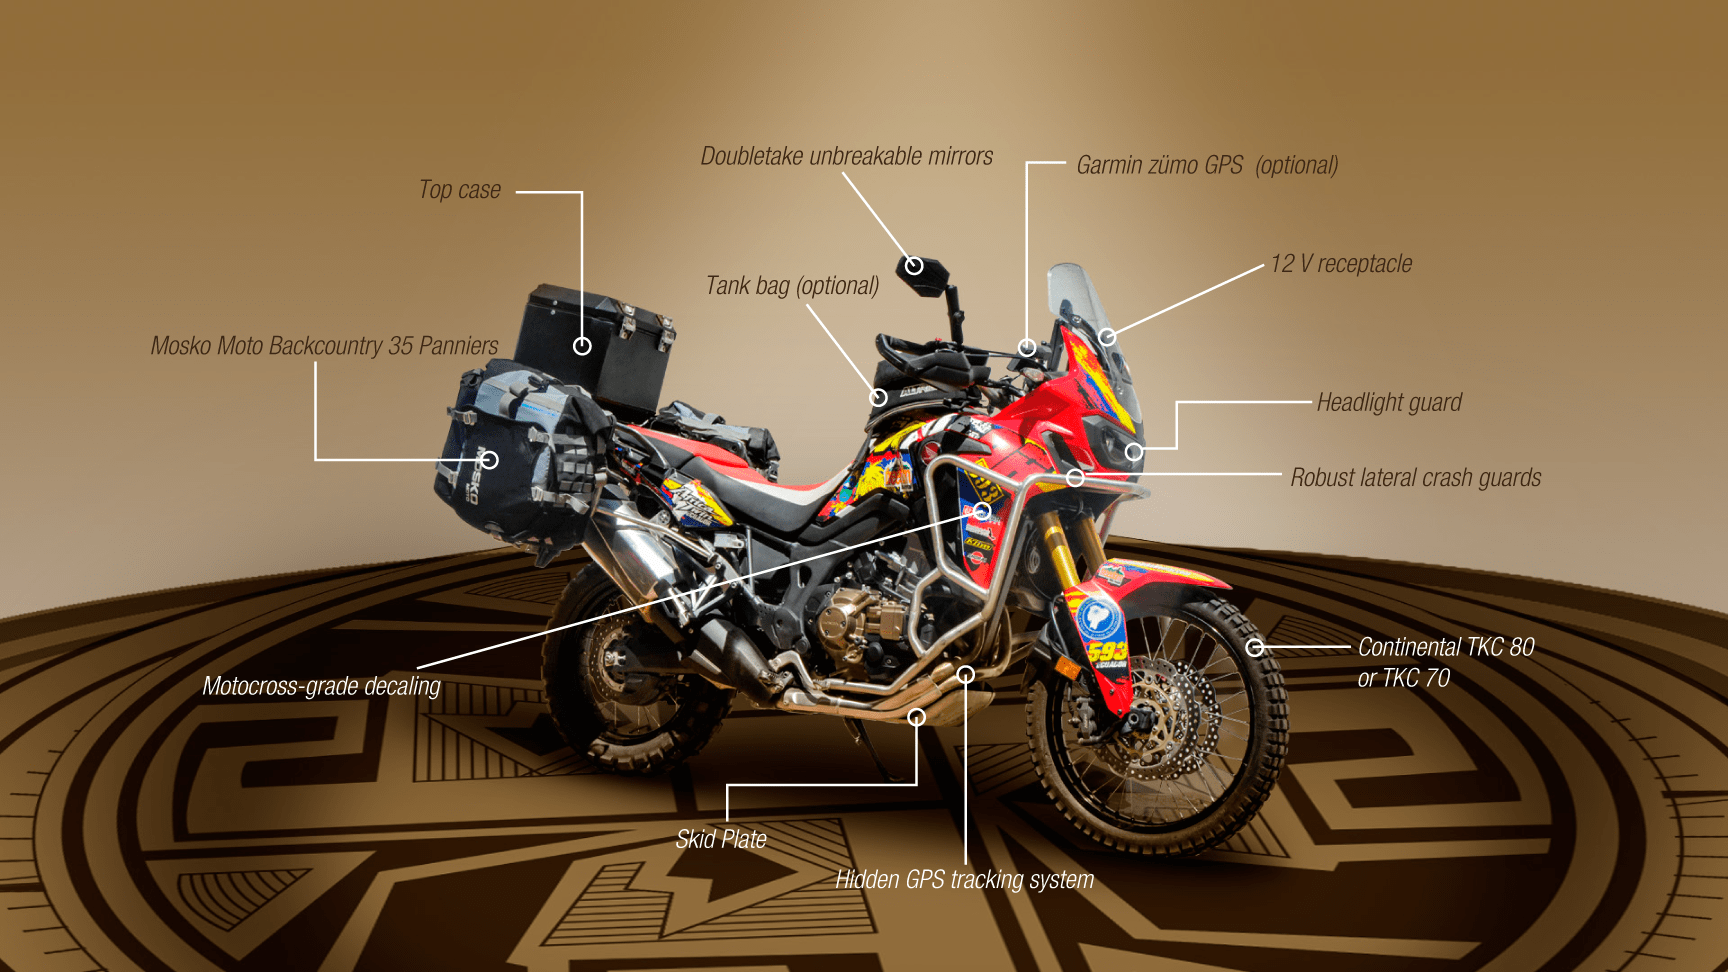 Motorcycle Rental - Honda Africa Twin with DCT in Quito, Ecuador, South America